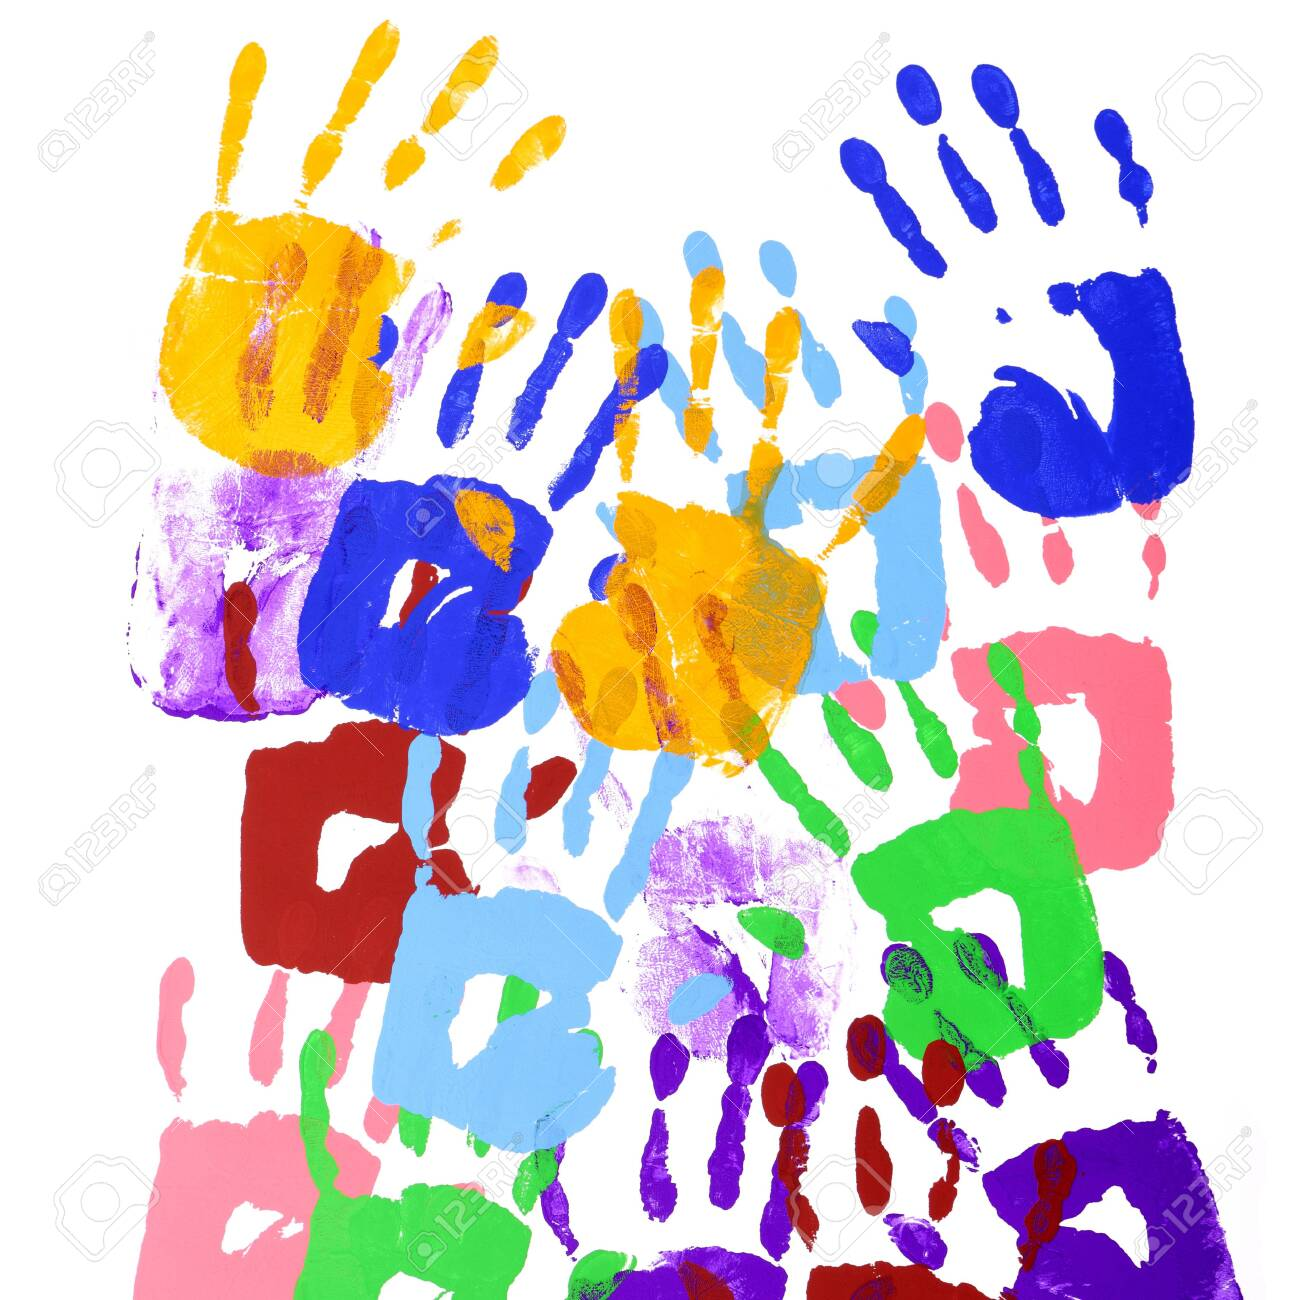 Multicolor handprints on a white background - 136093816